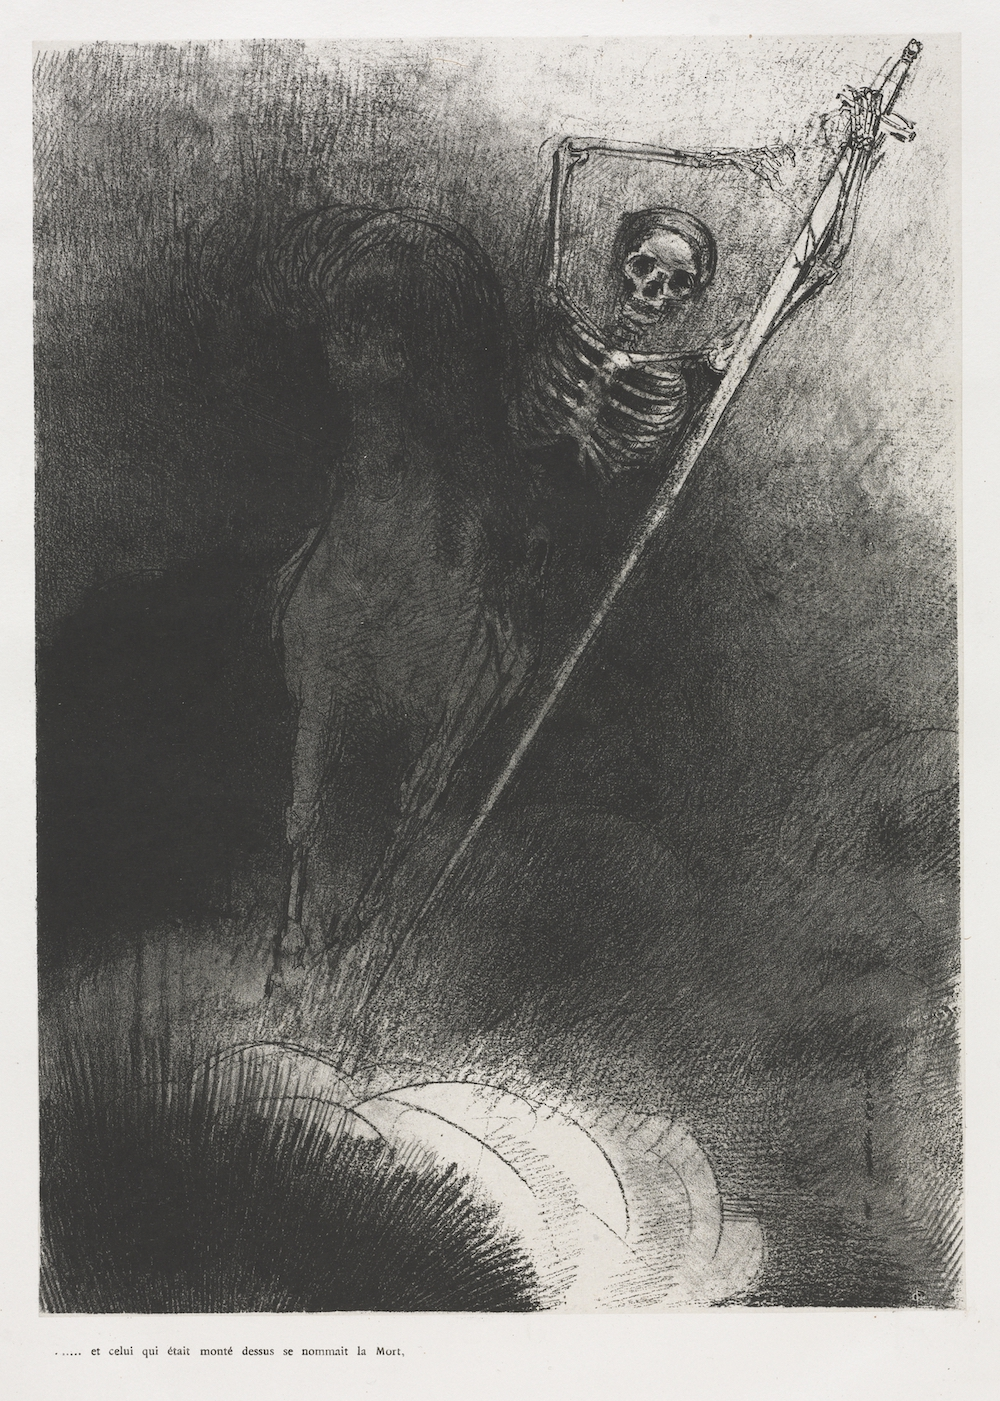 A lithograph of a skeleton riding a horse, holding a large sword.